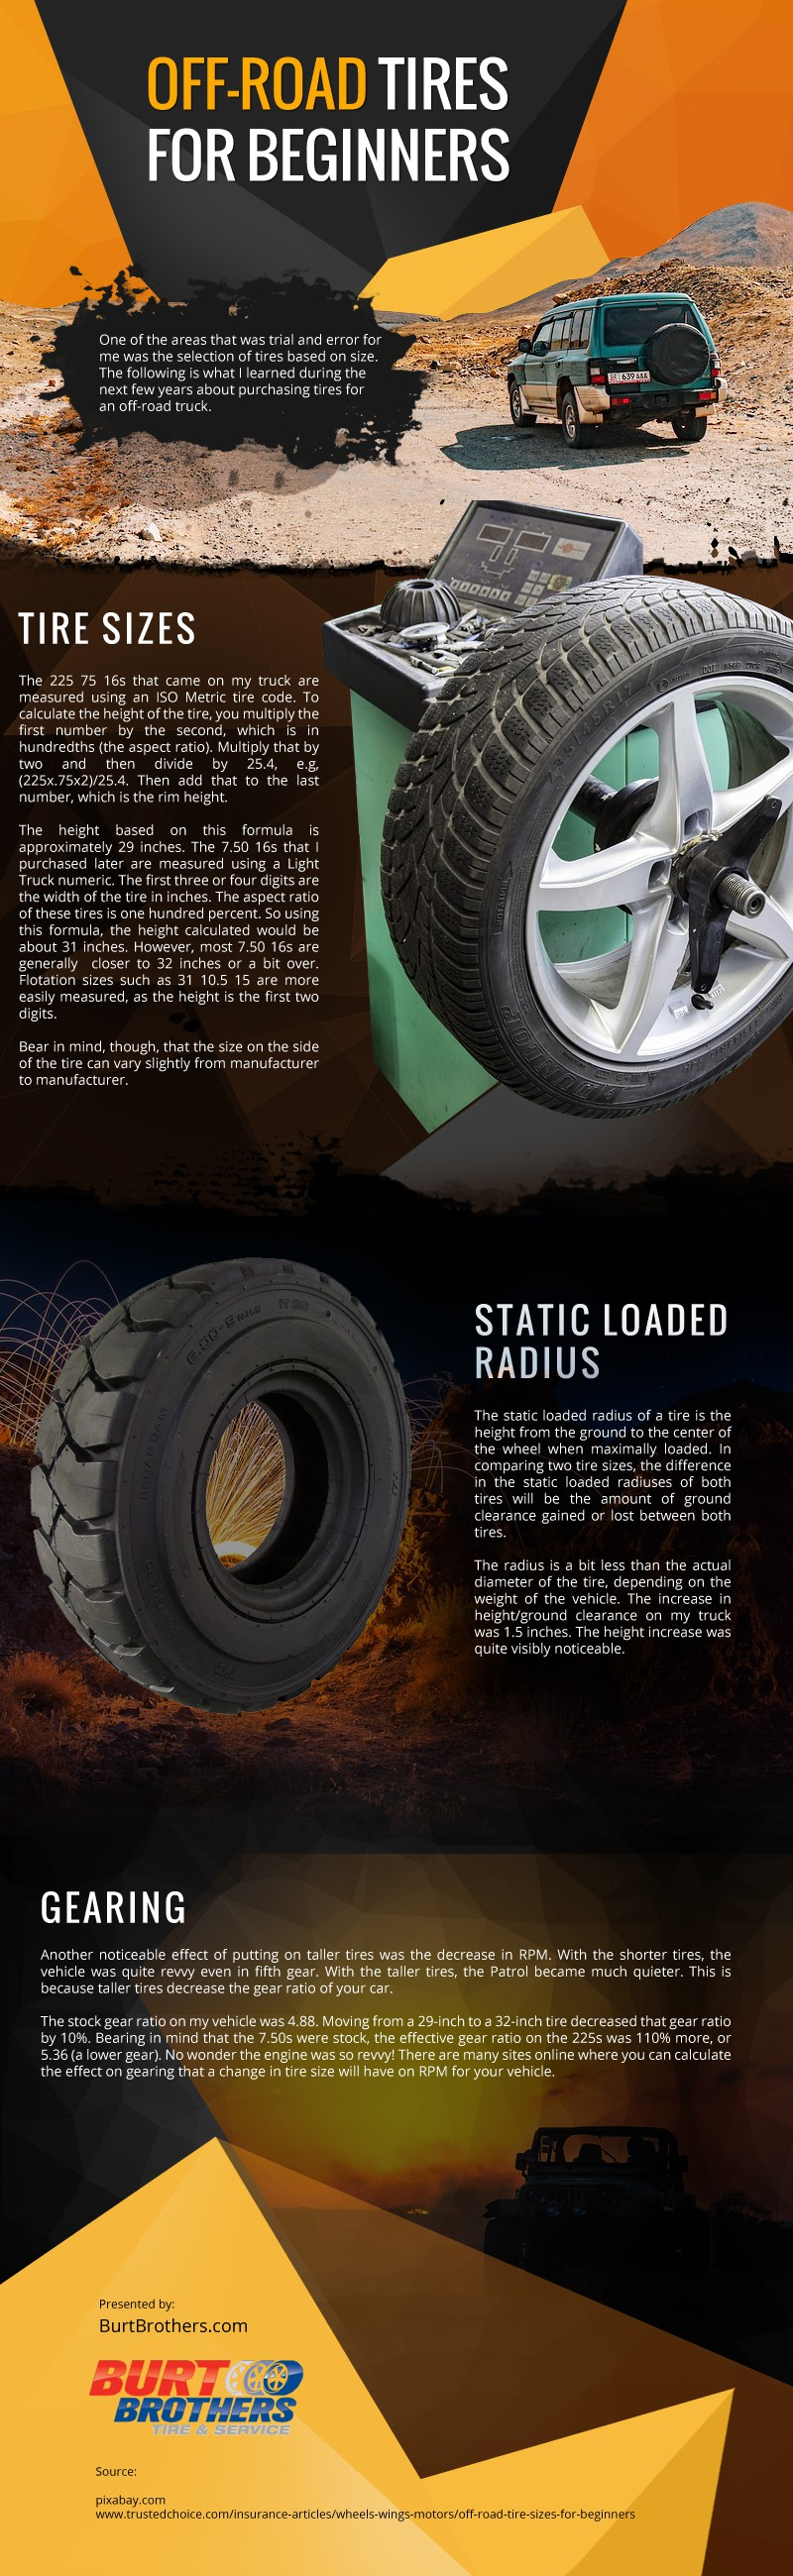 Off-road-Tires-for-Beginners Infographic